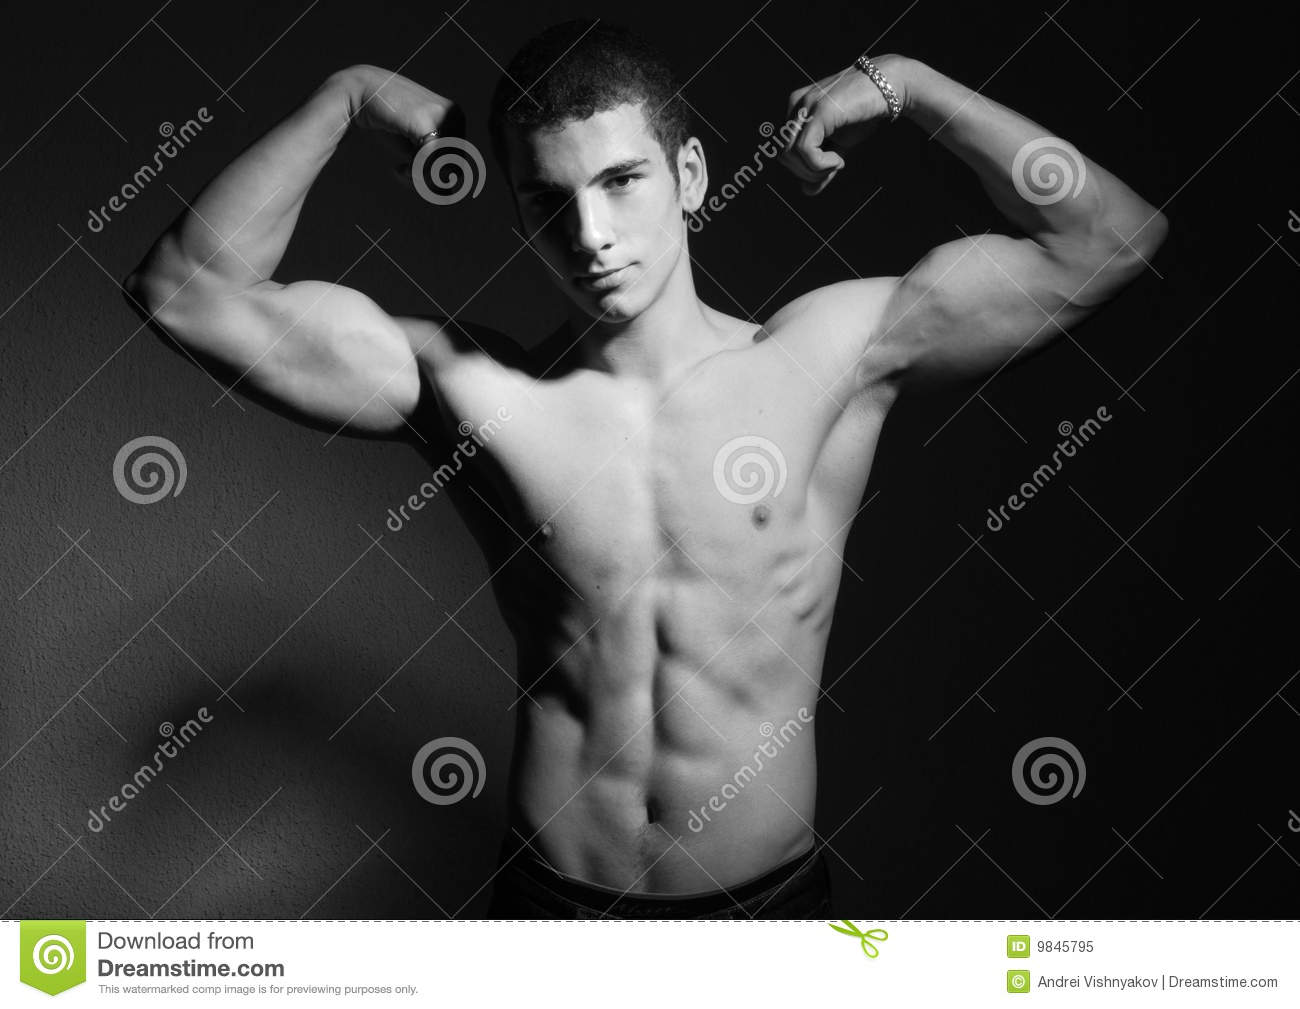 ... chested young man flexing muscles, black and white studio background